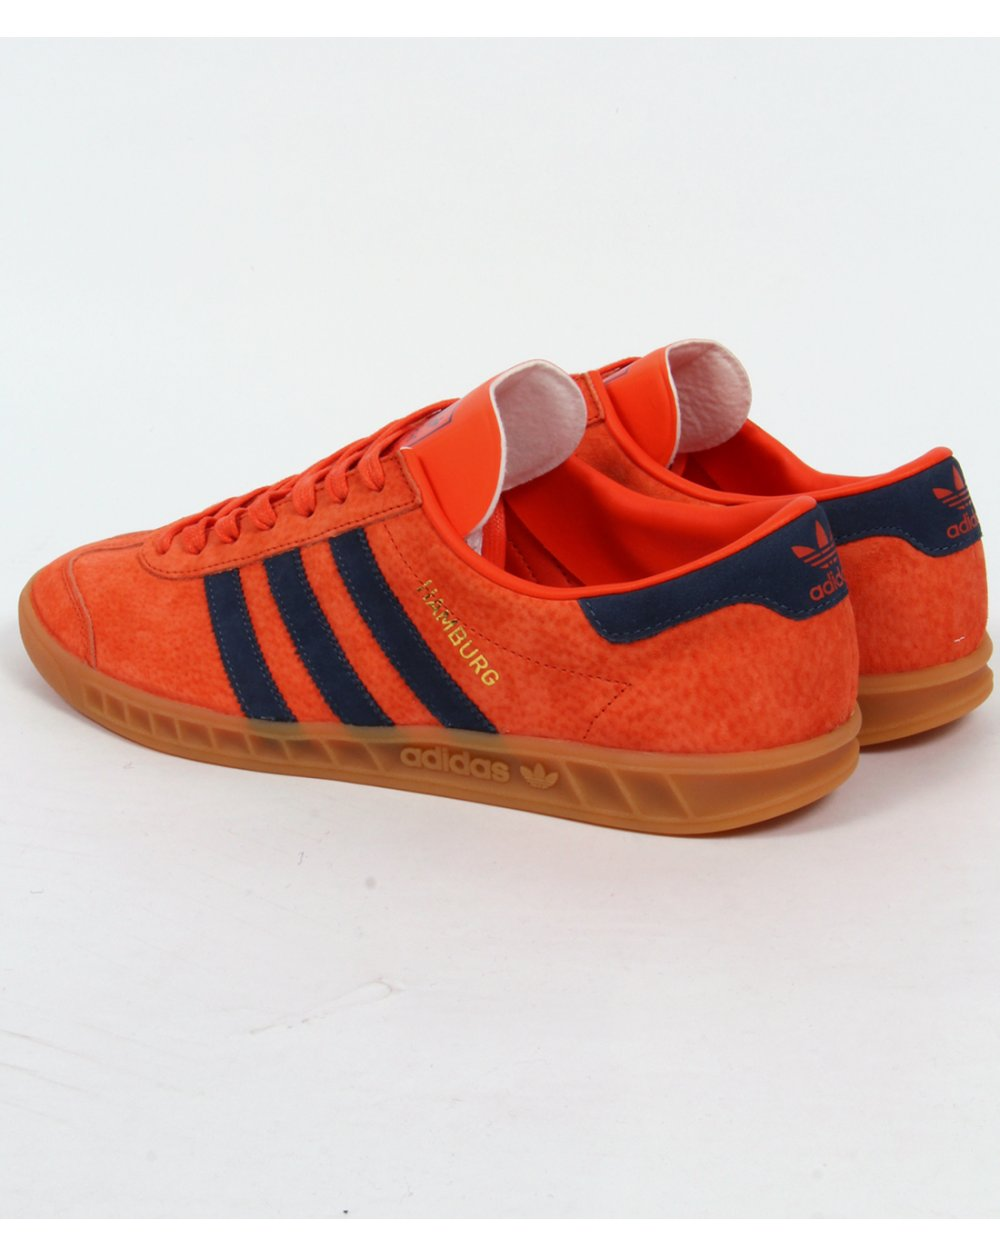 adidas hamburg black and orange size 9